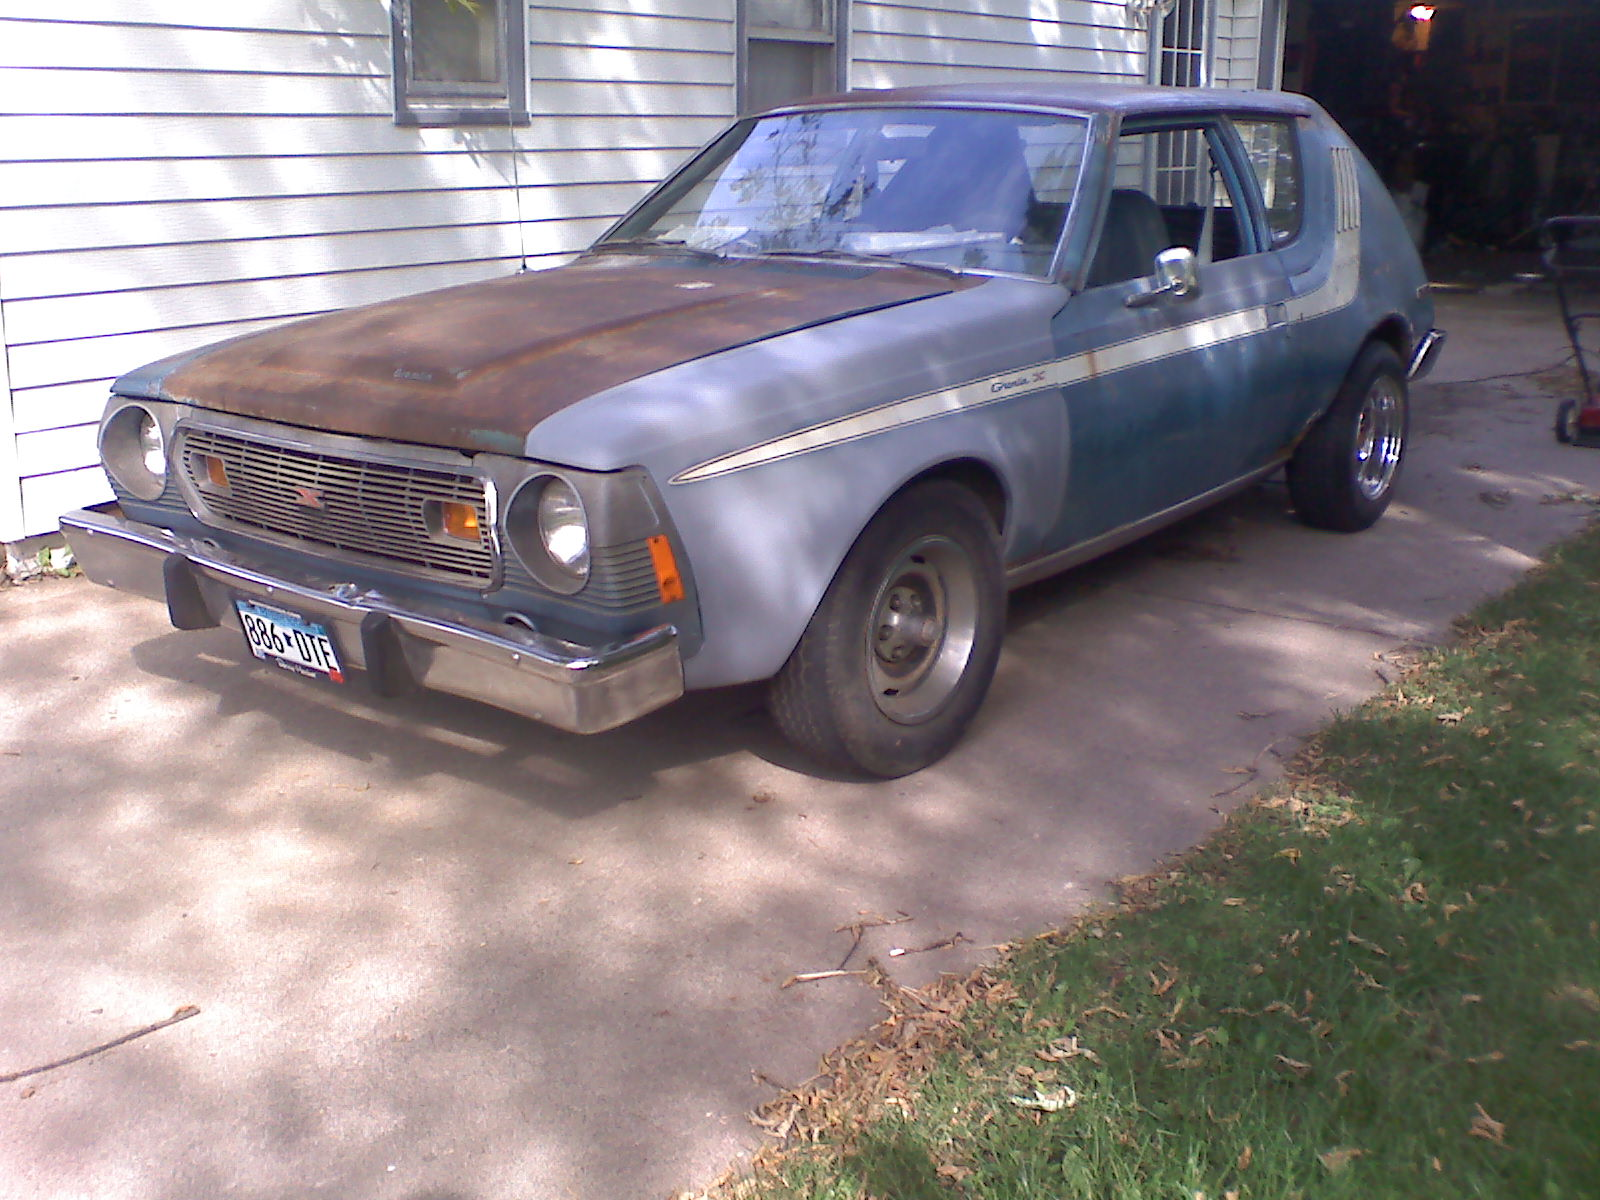 Home » Craigslist Oregon Amc Gremlin For Sale